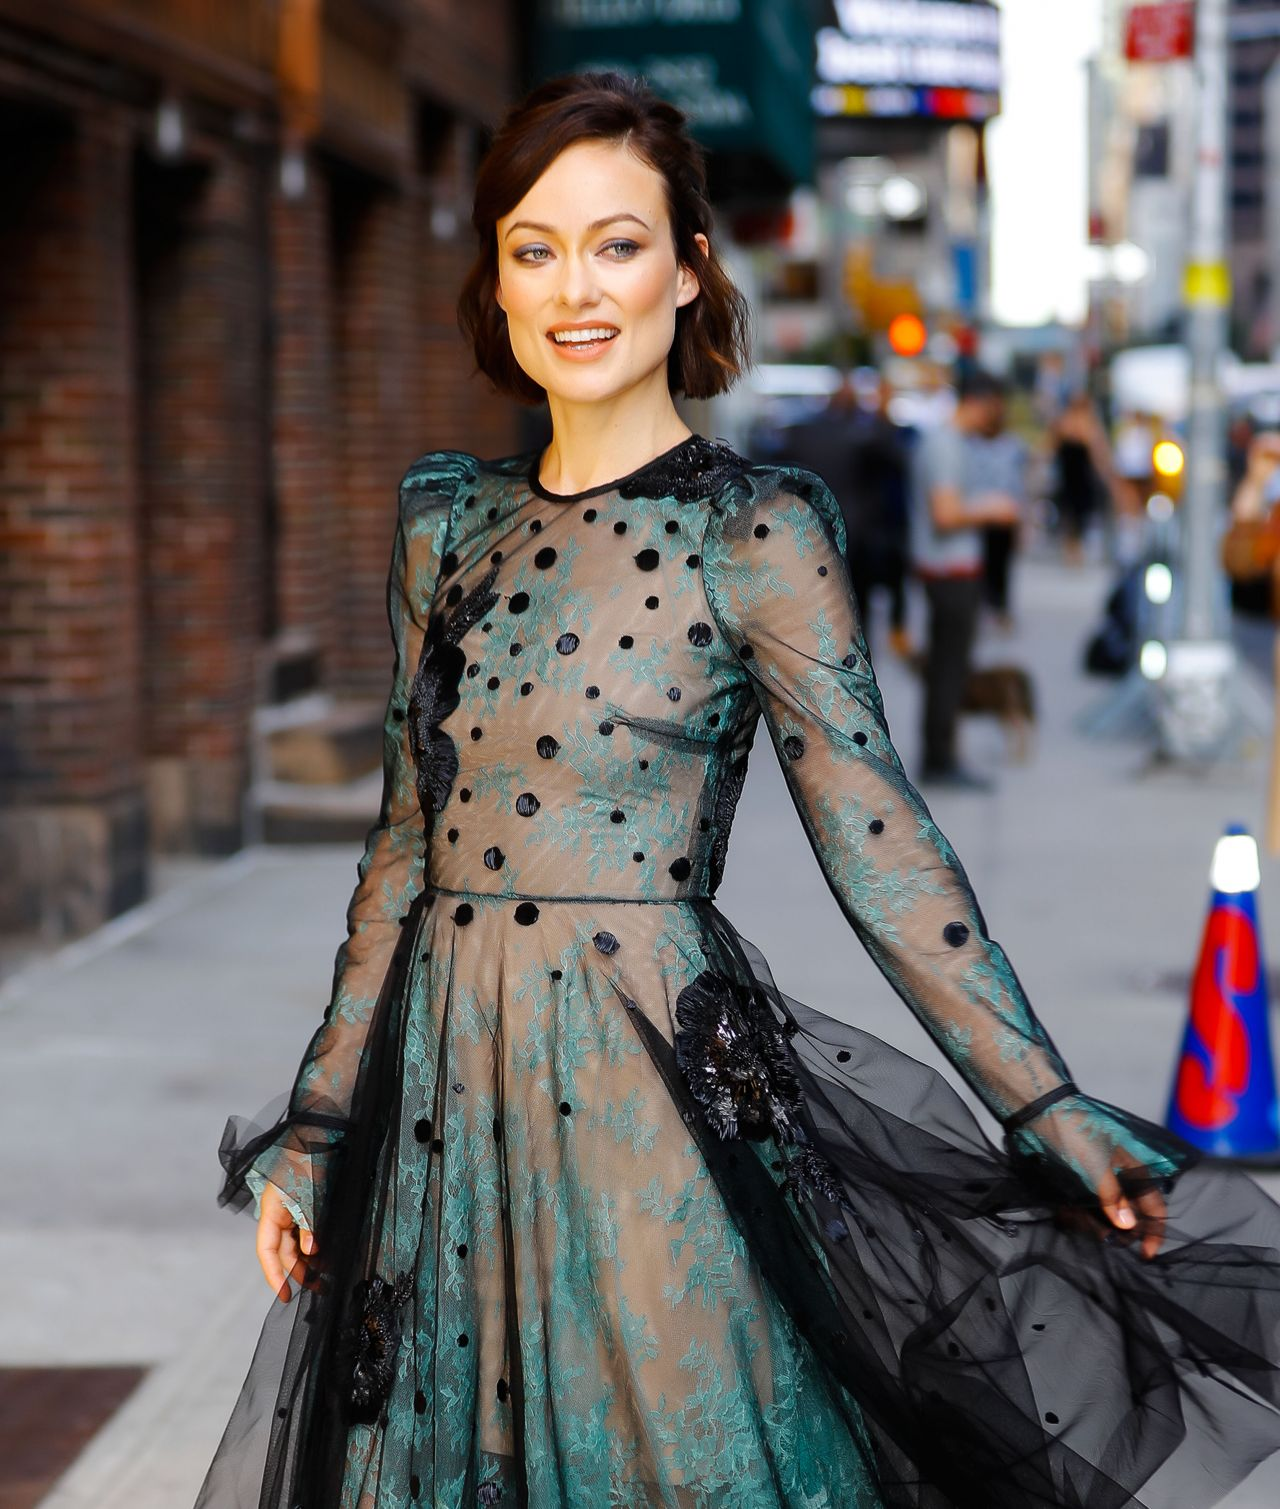 Olivia Wilde at The Late Show With Stephen Colbert in NYC ... Olivia Wilde